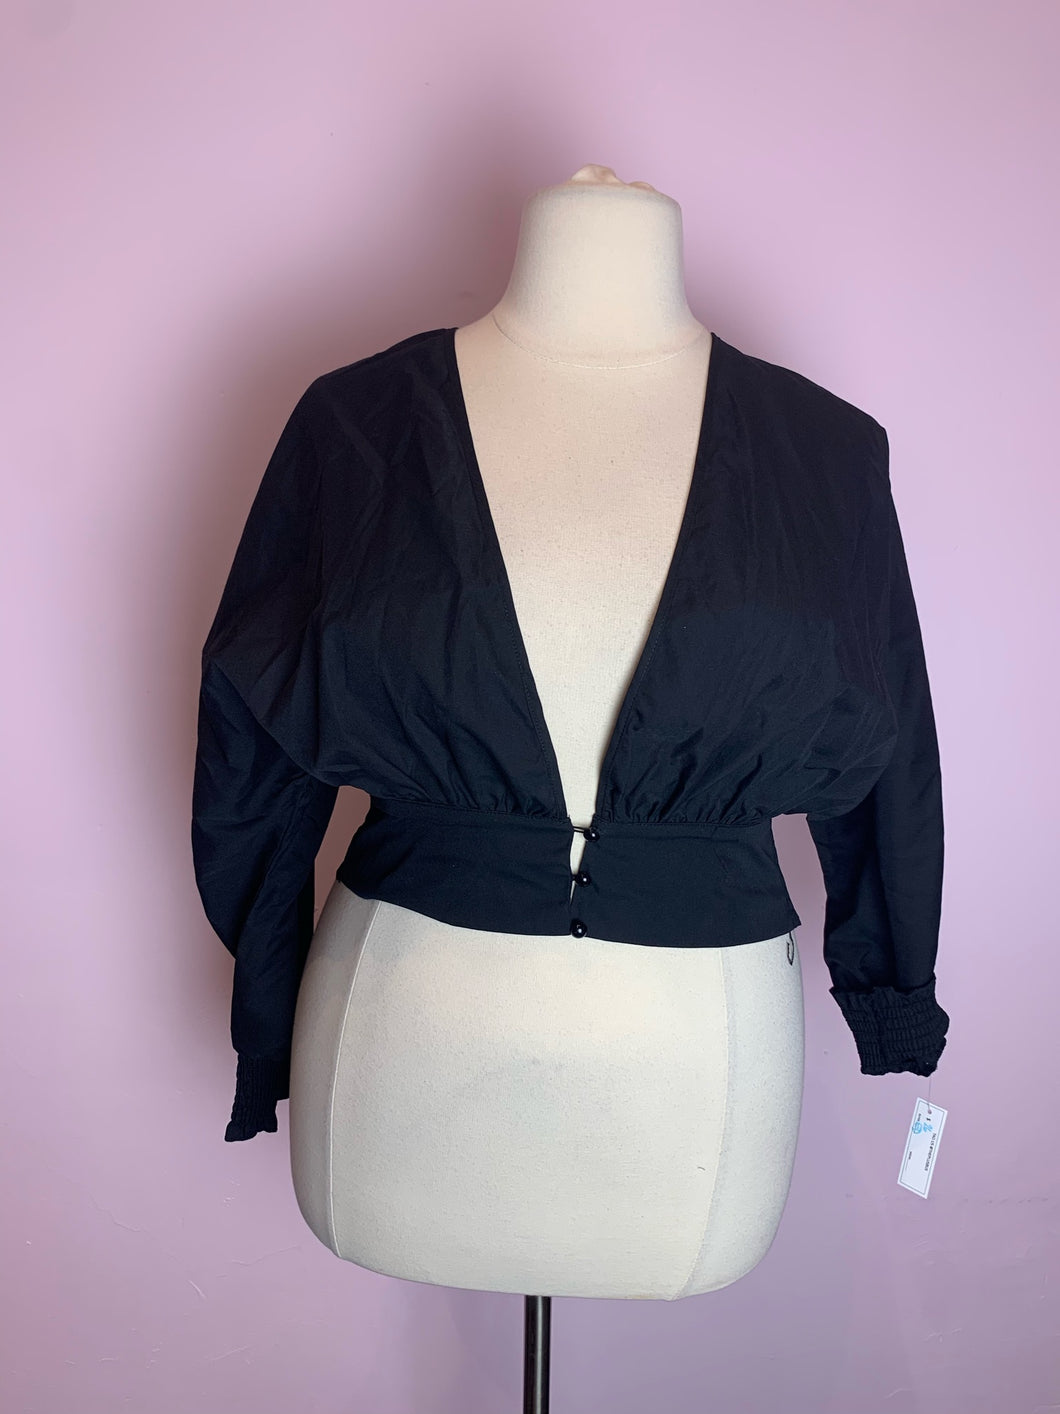 Fitted Black SHEIN Top, Size 3XL